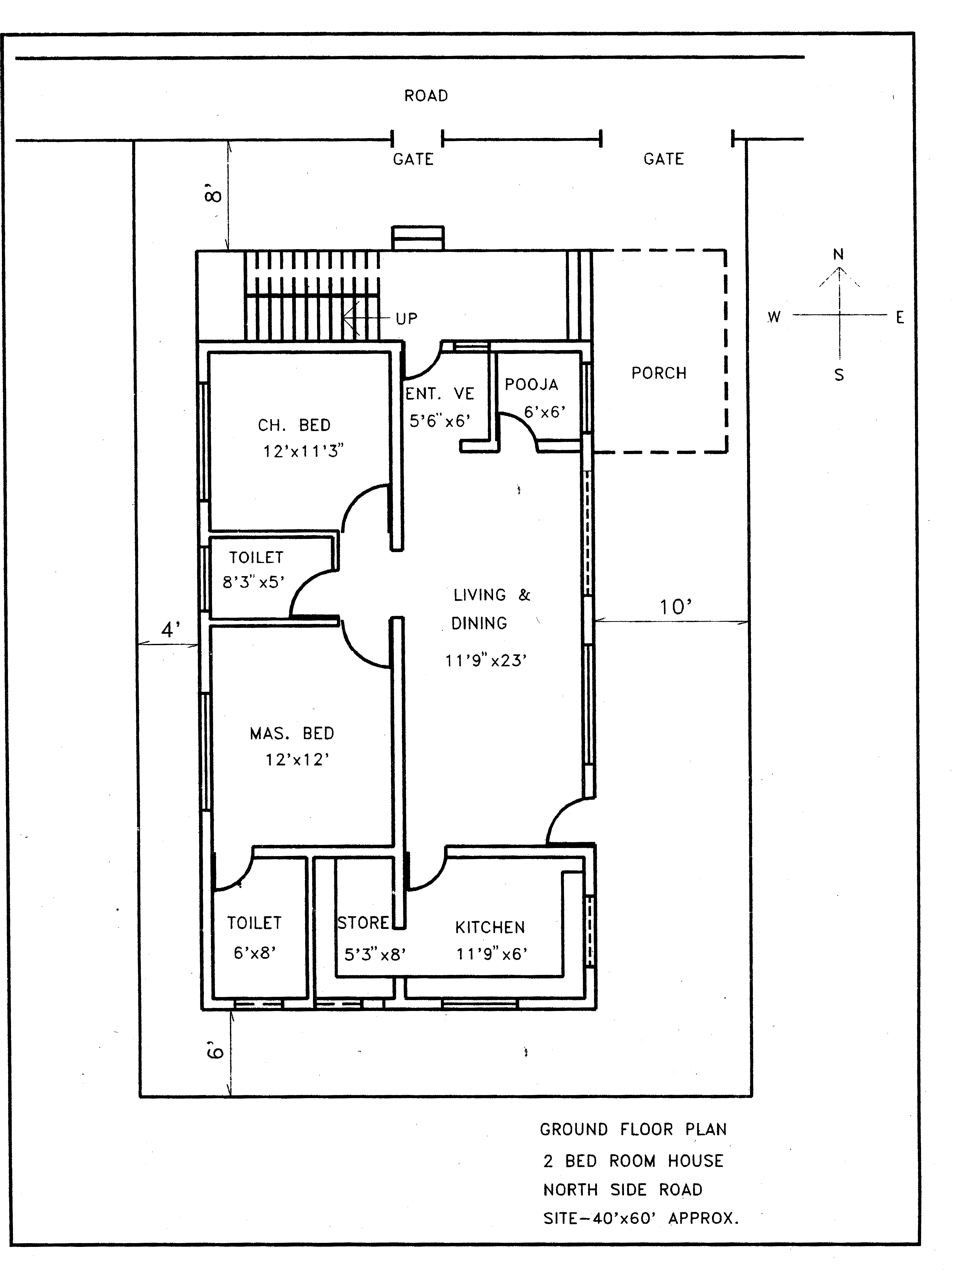 Pin By Lauren Taylor On Hindu Architecture 2bhk House Plan House